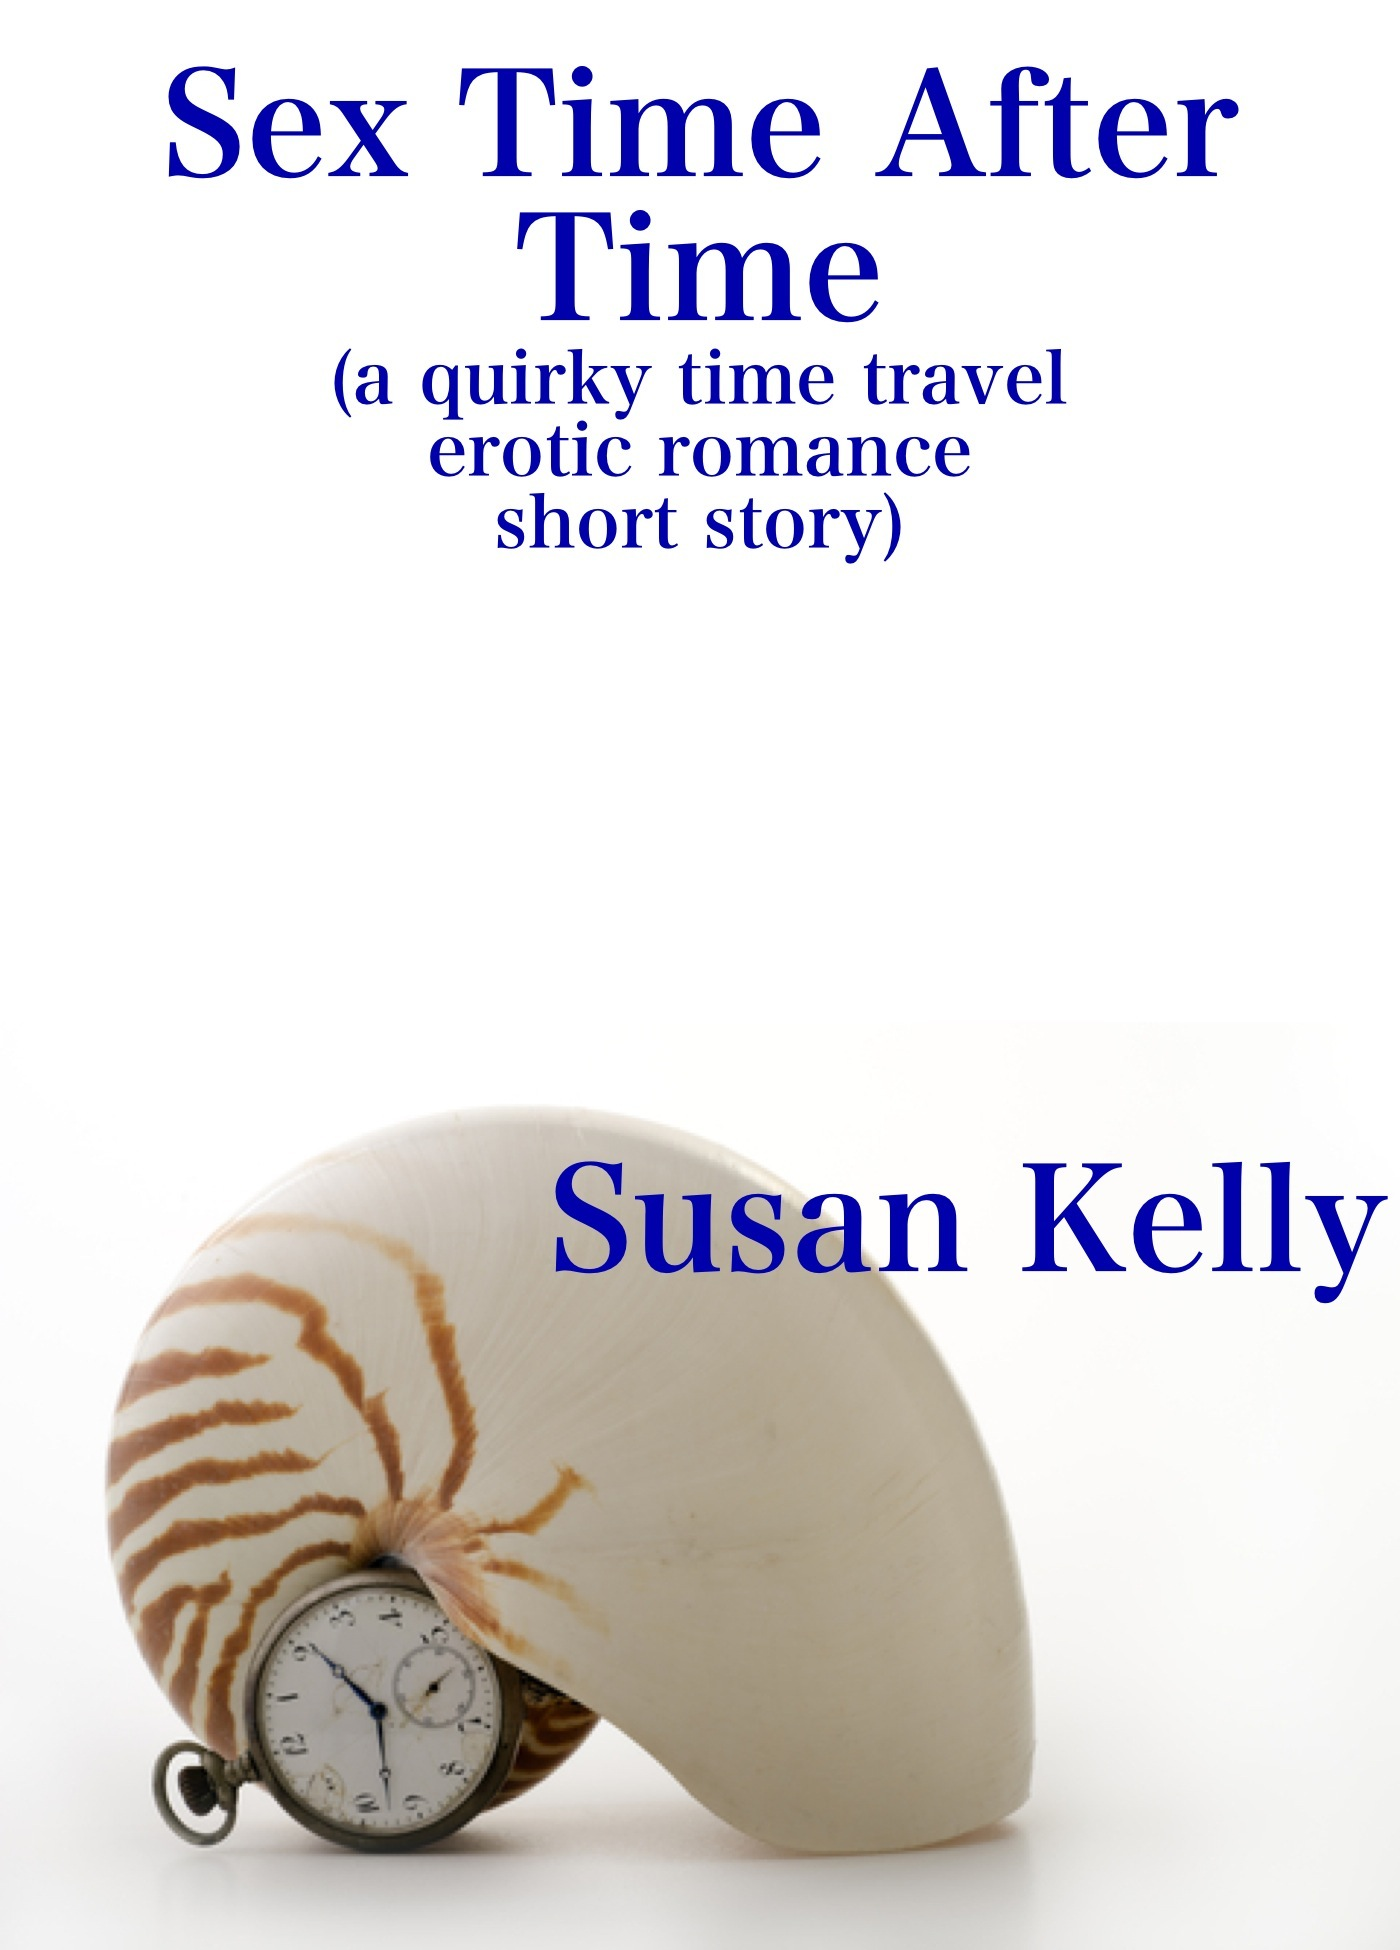 Sex Time After Time (a quirky time travel erotic romance short story)